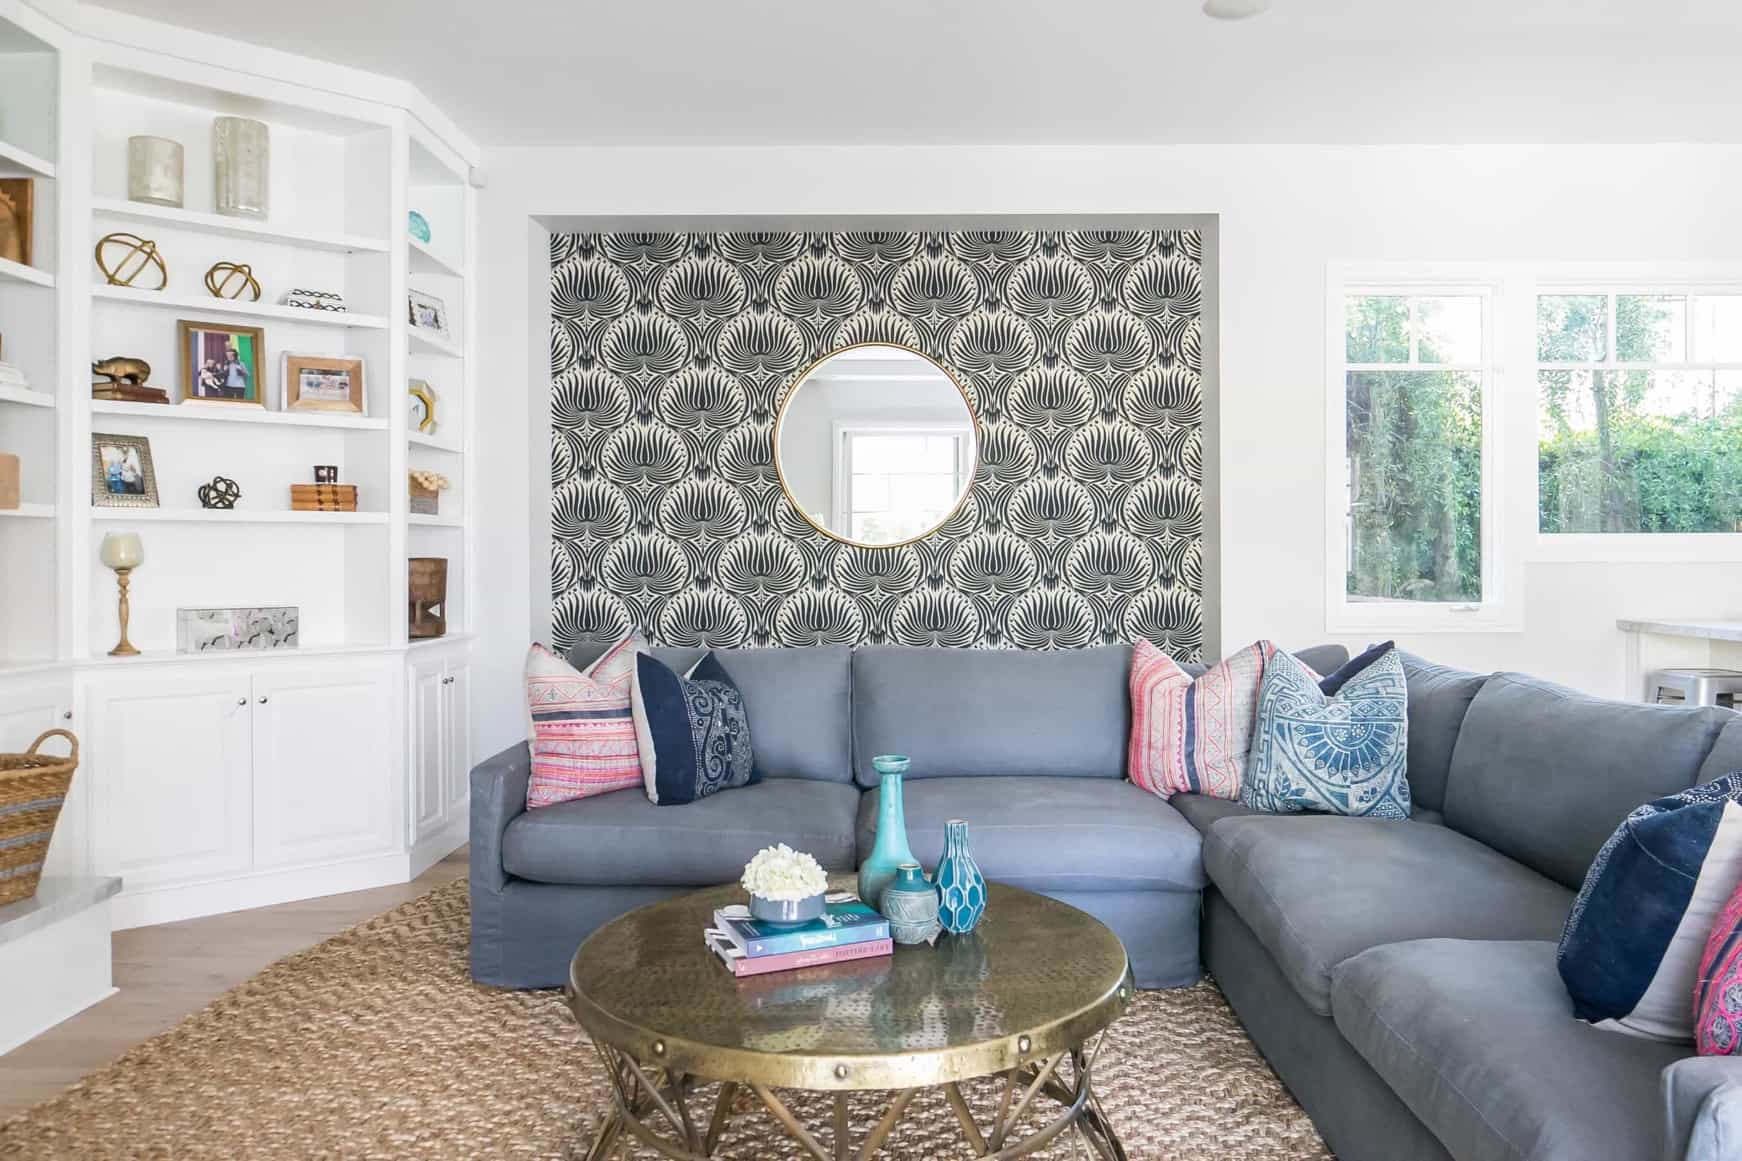 Featured Image of Coastal Living Room With Seashell Wallpaper Accent Wall